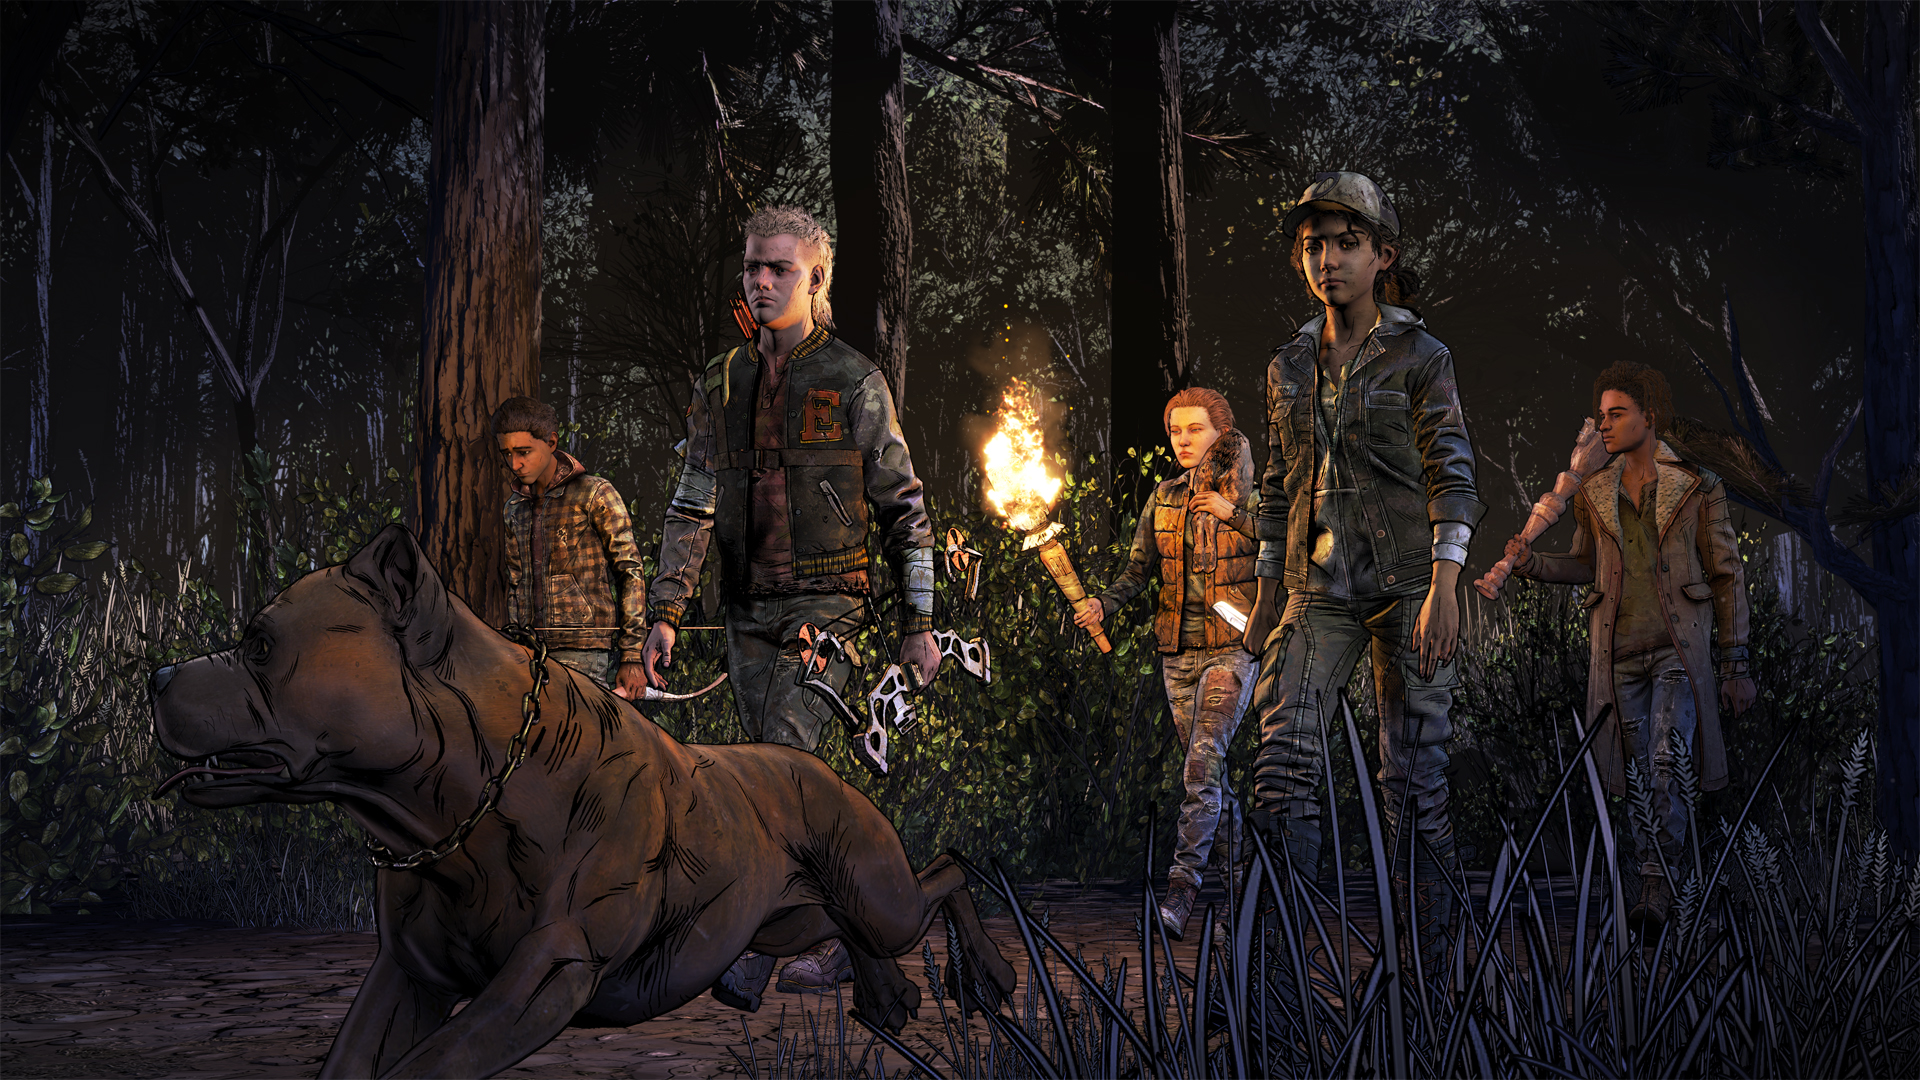 The Walking Dead: The Final Season cancelado según rumores